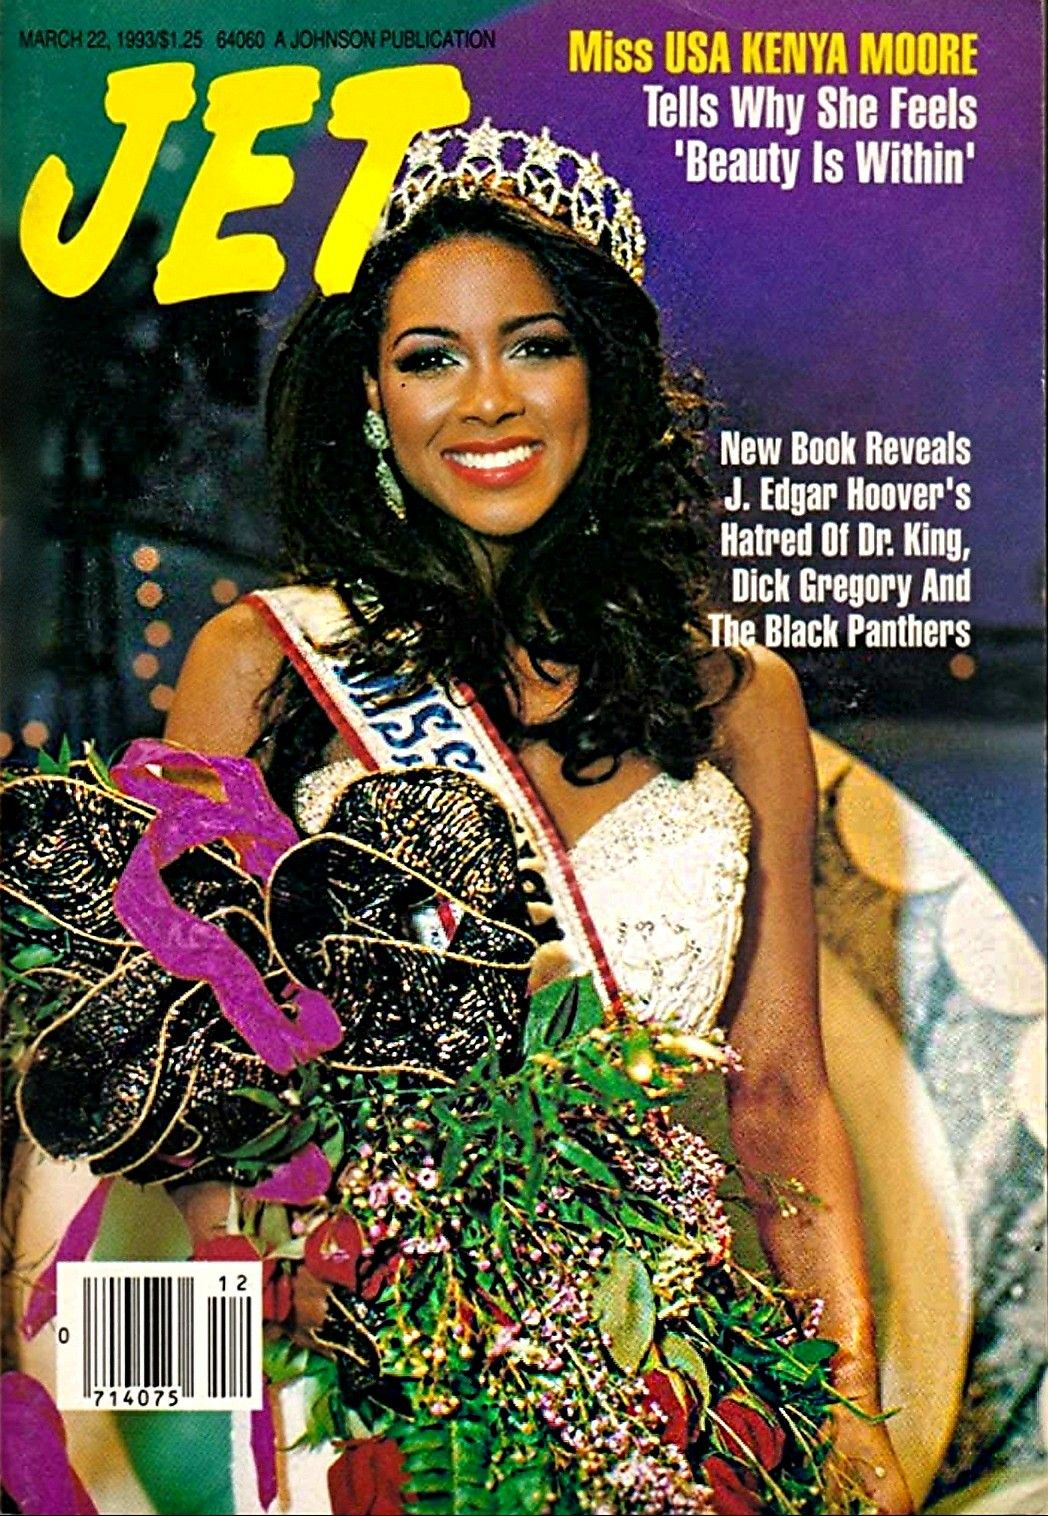 KENYA MOORE JET MAGAZINE MARCH,22,1993 COVER